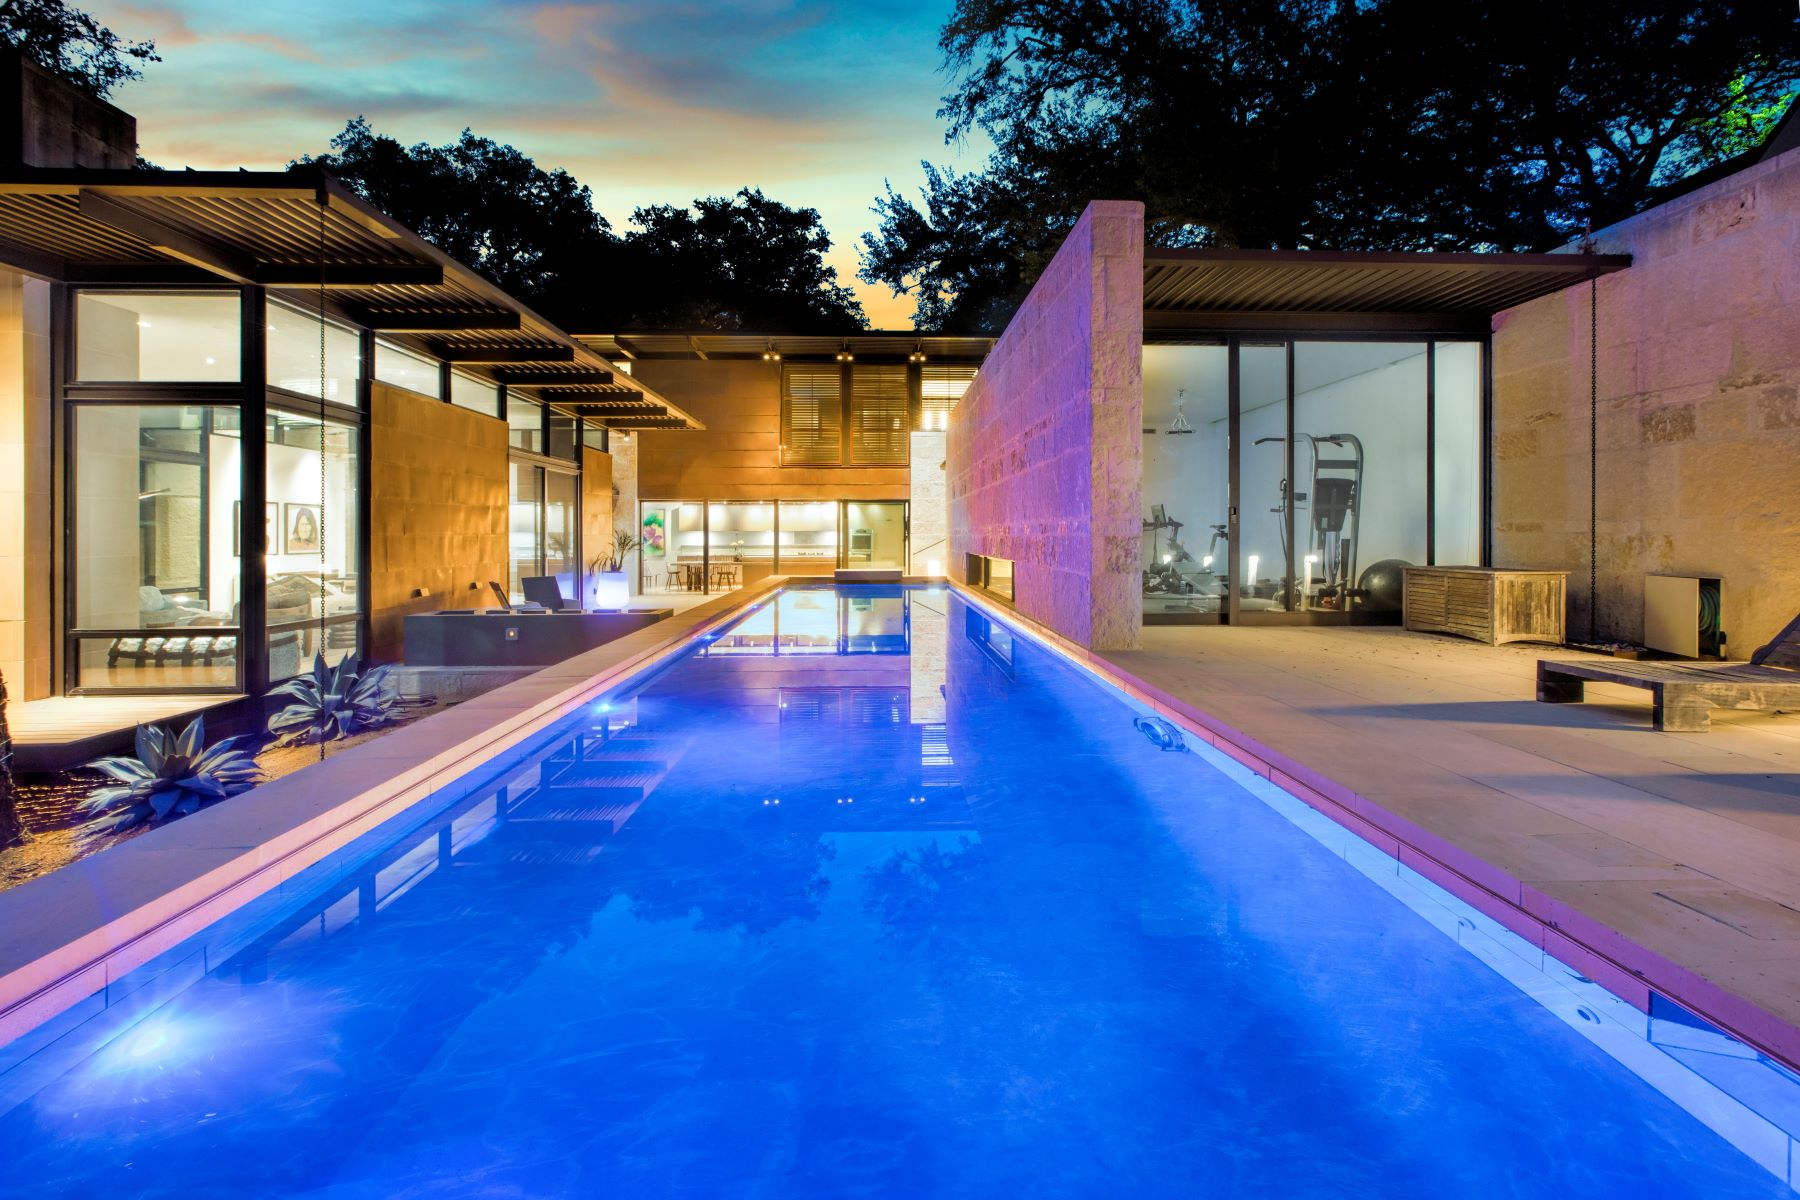 Single Family Homes for Active at Spectacular Ultra Contemporary Custom Home in Olmos Park San Antonio, Texas 78212 United States